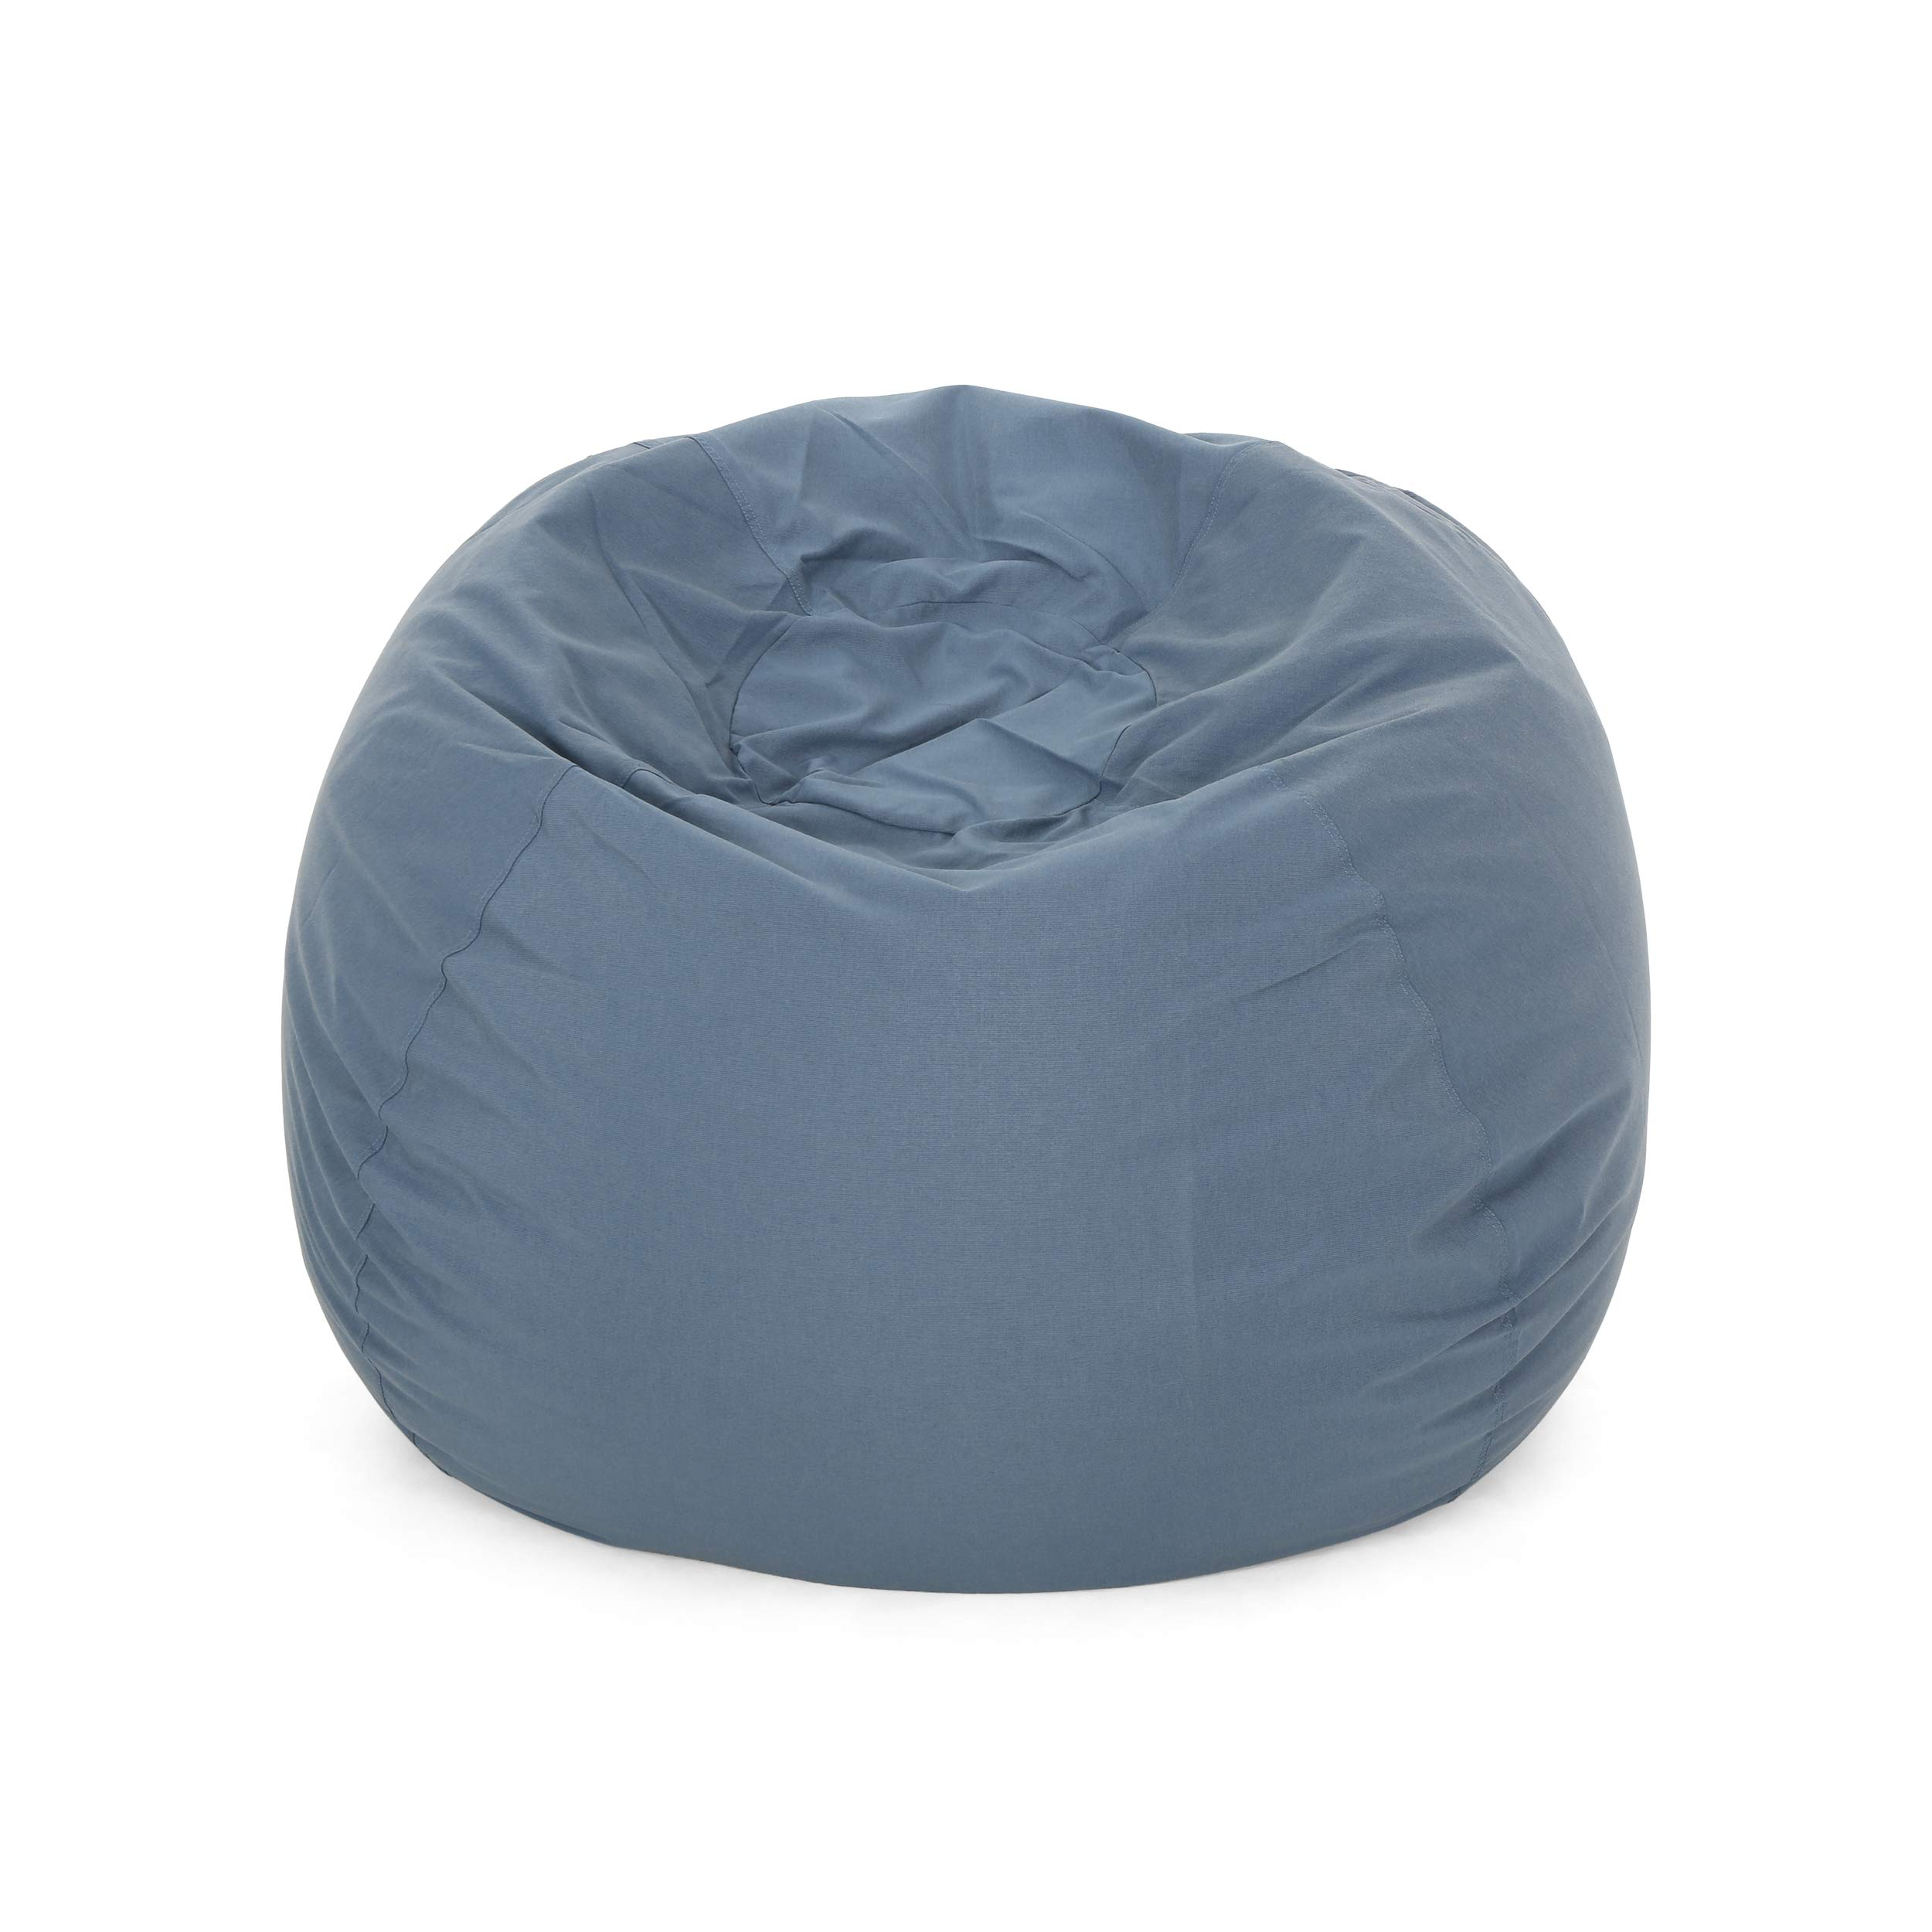 Christopher Knight Home Poppy Indoor Water Resistant 4.5' Bean Bag, Blue by Christopher Knight Home